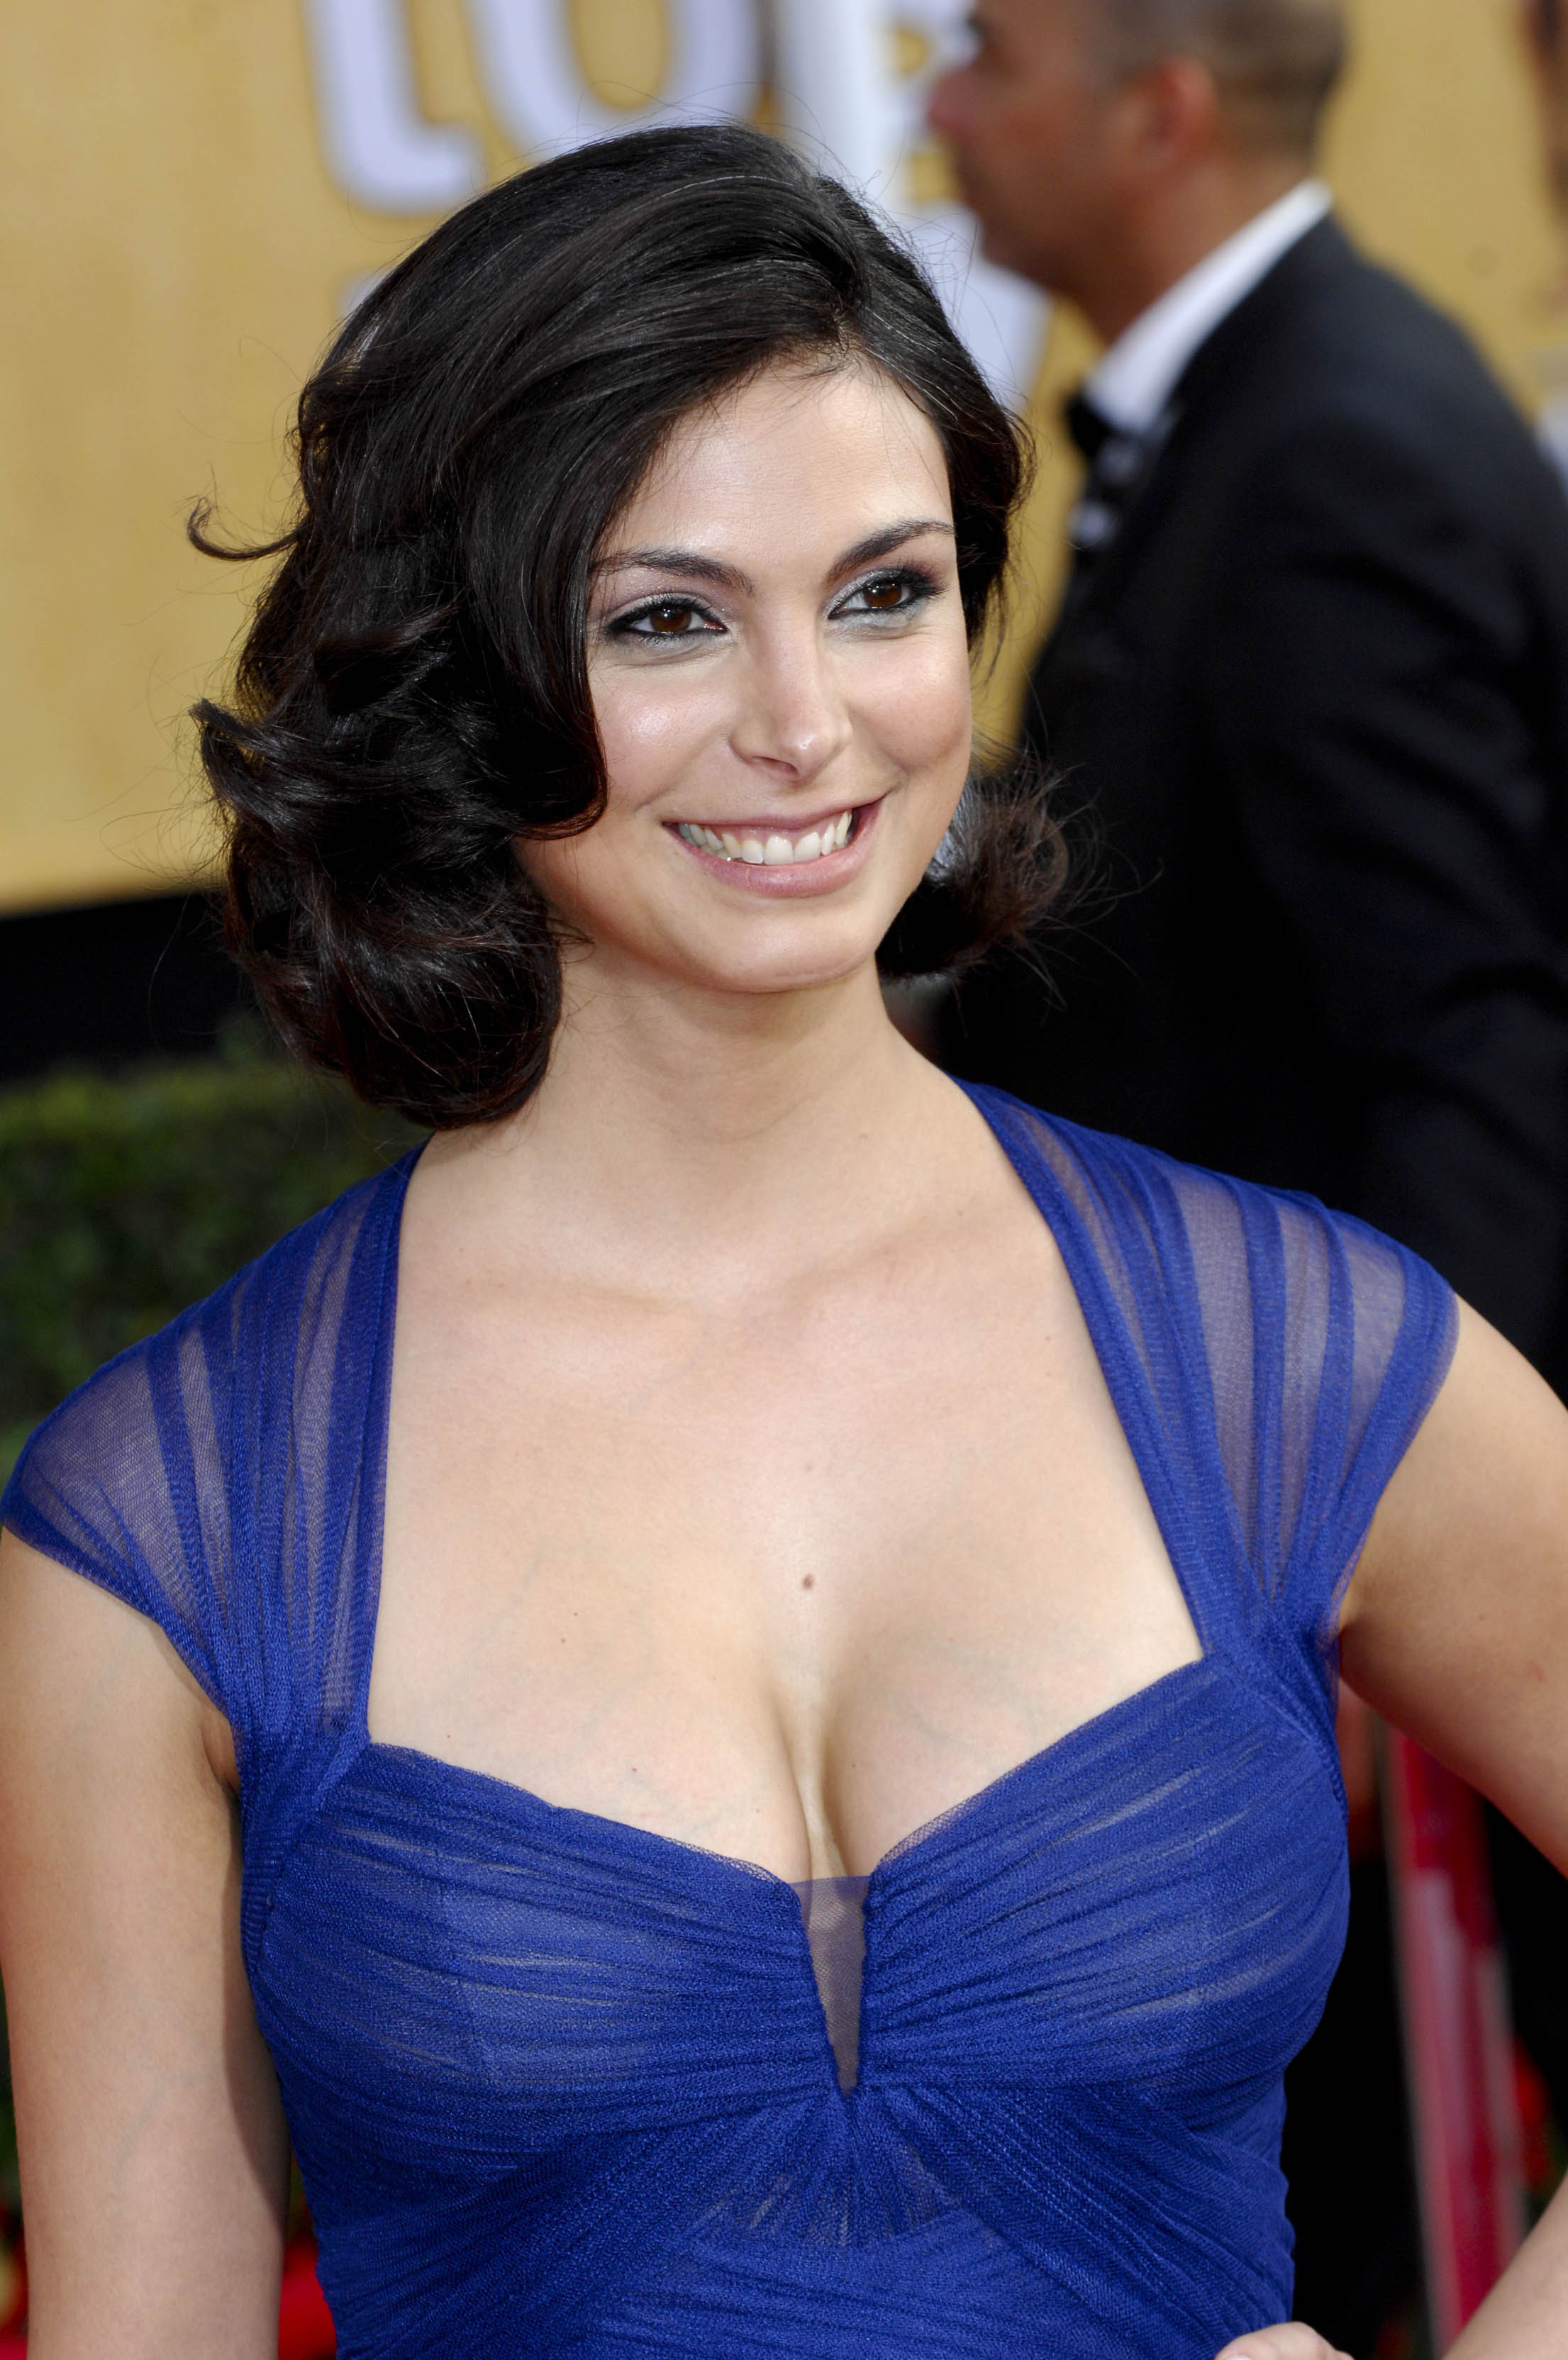 Morena baccarin attends the sag awards